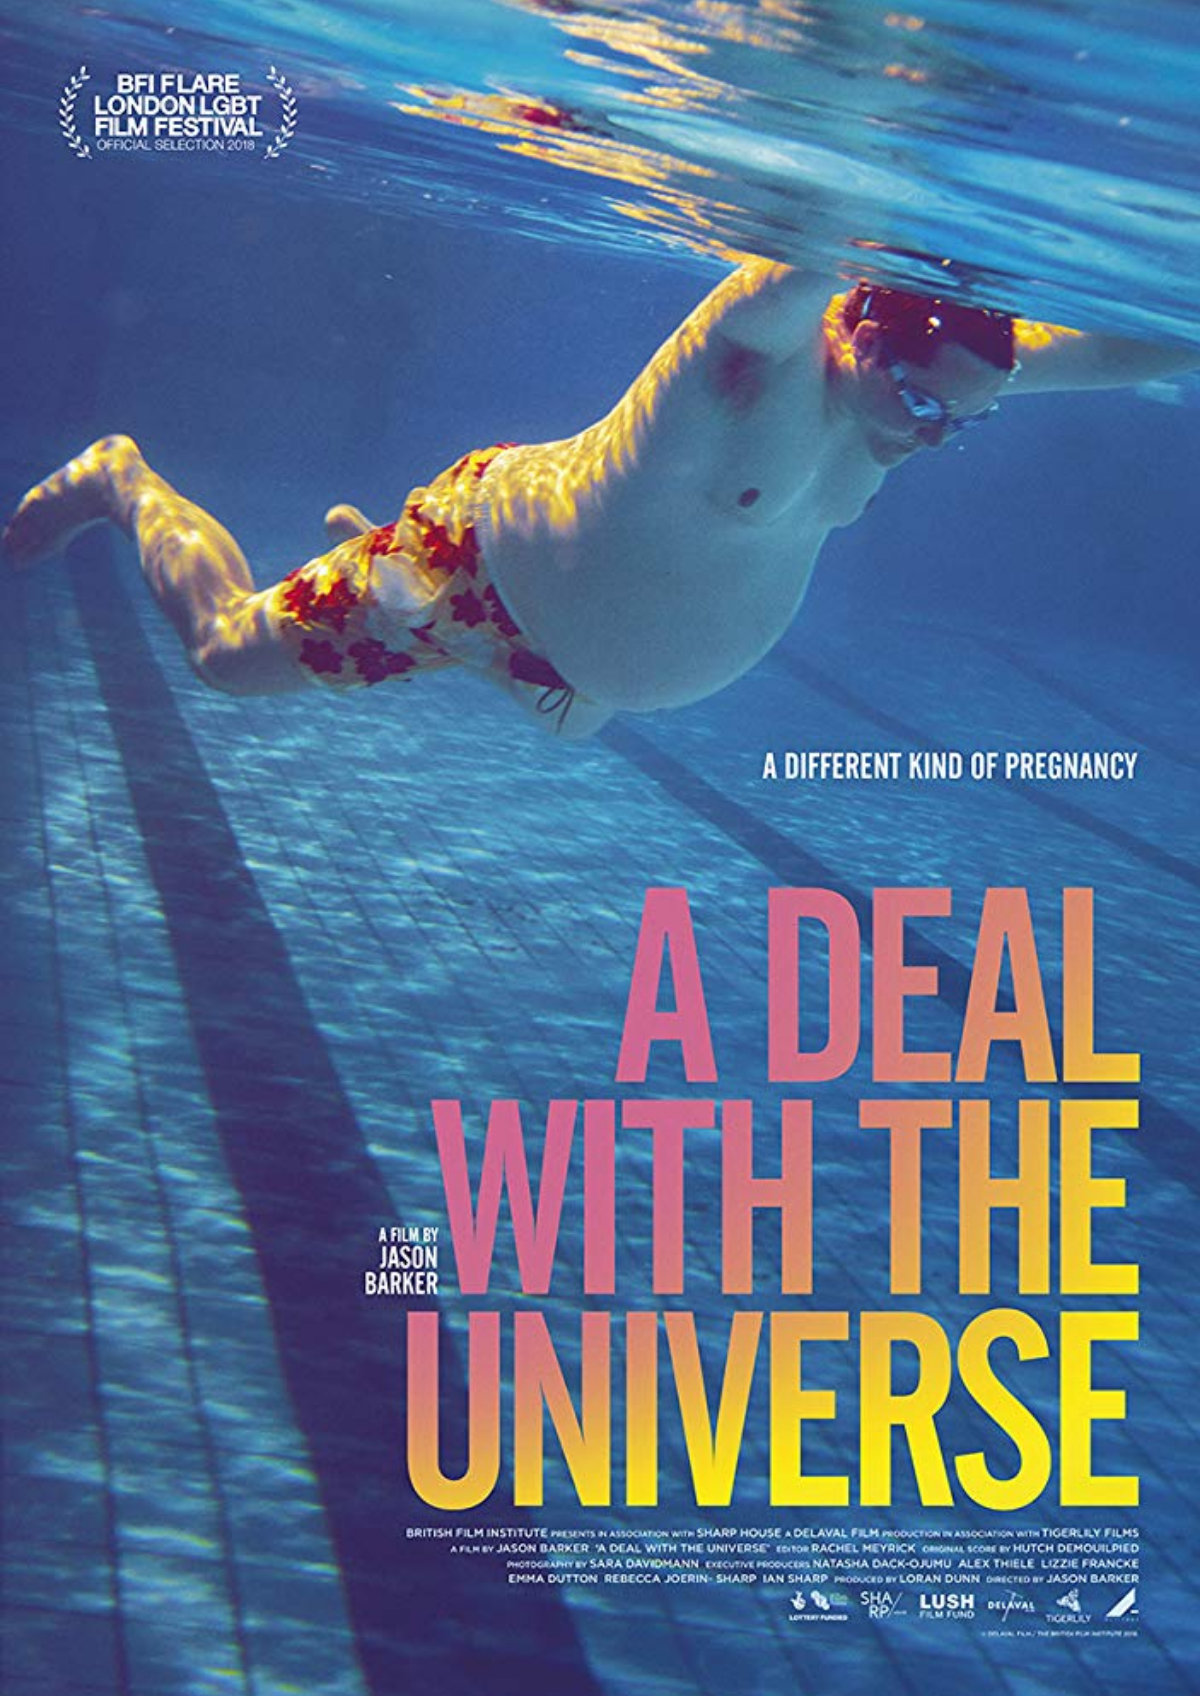 'A Deal With The Universe' movie poster